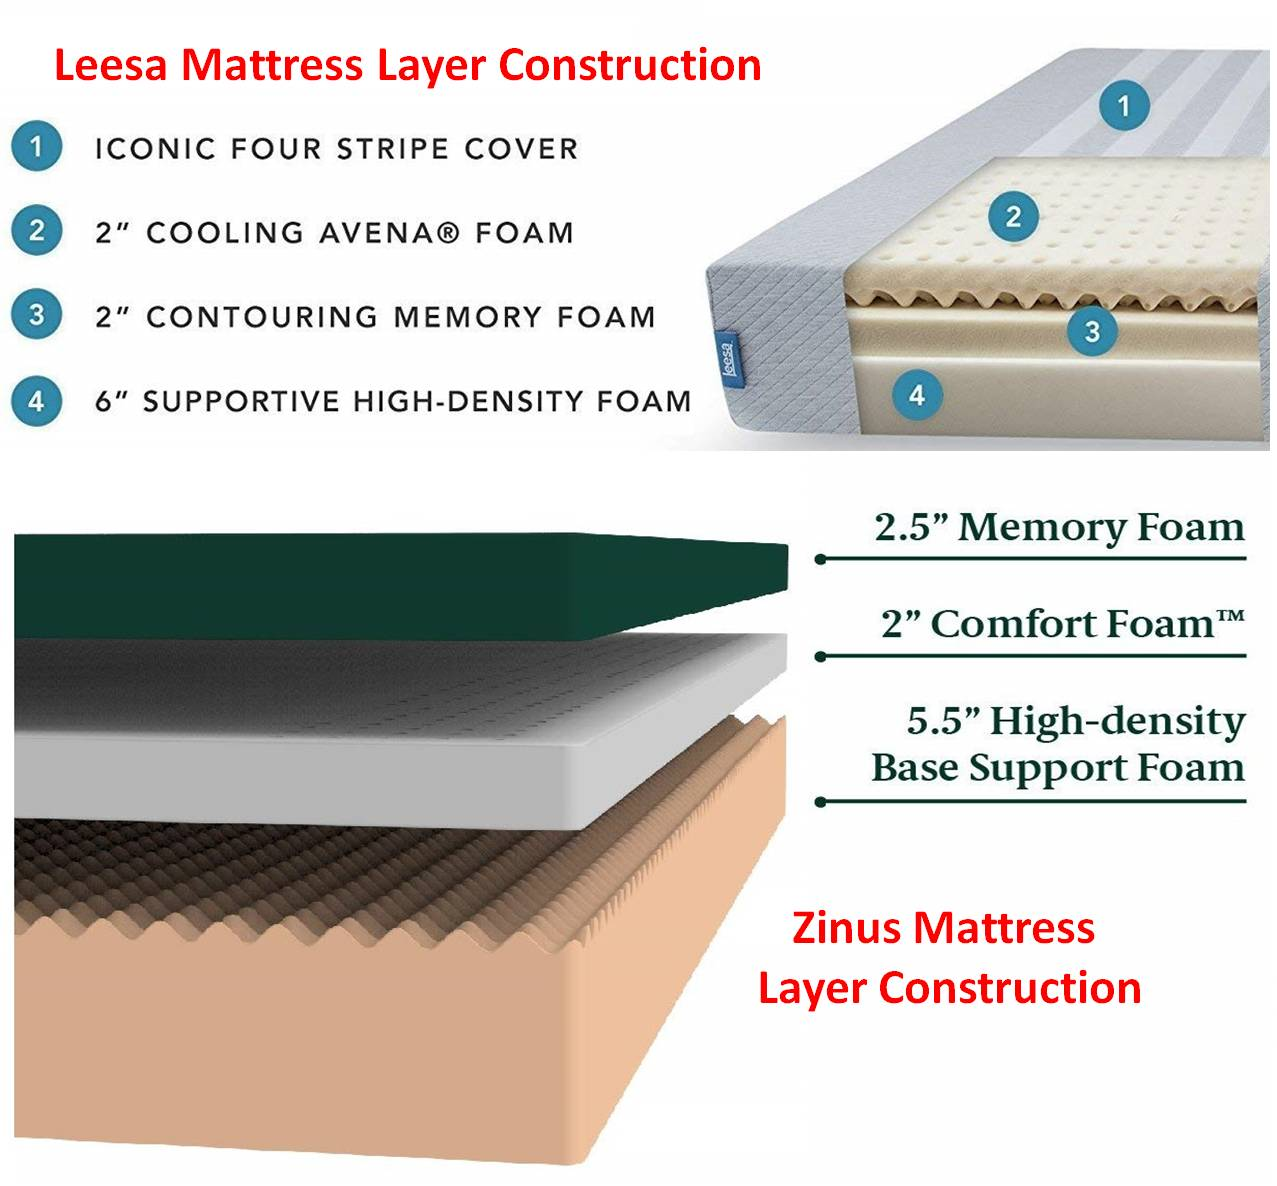 Zinus vs Leesa Mattress Layer Construction Comparison